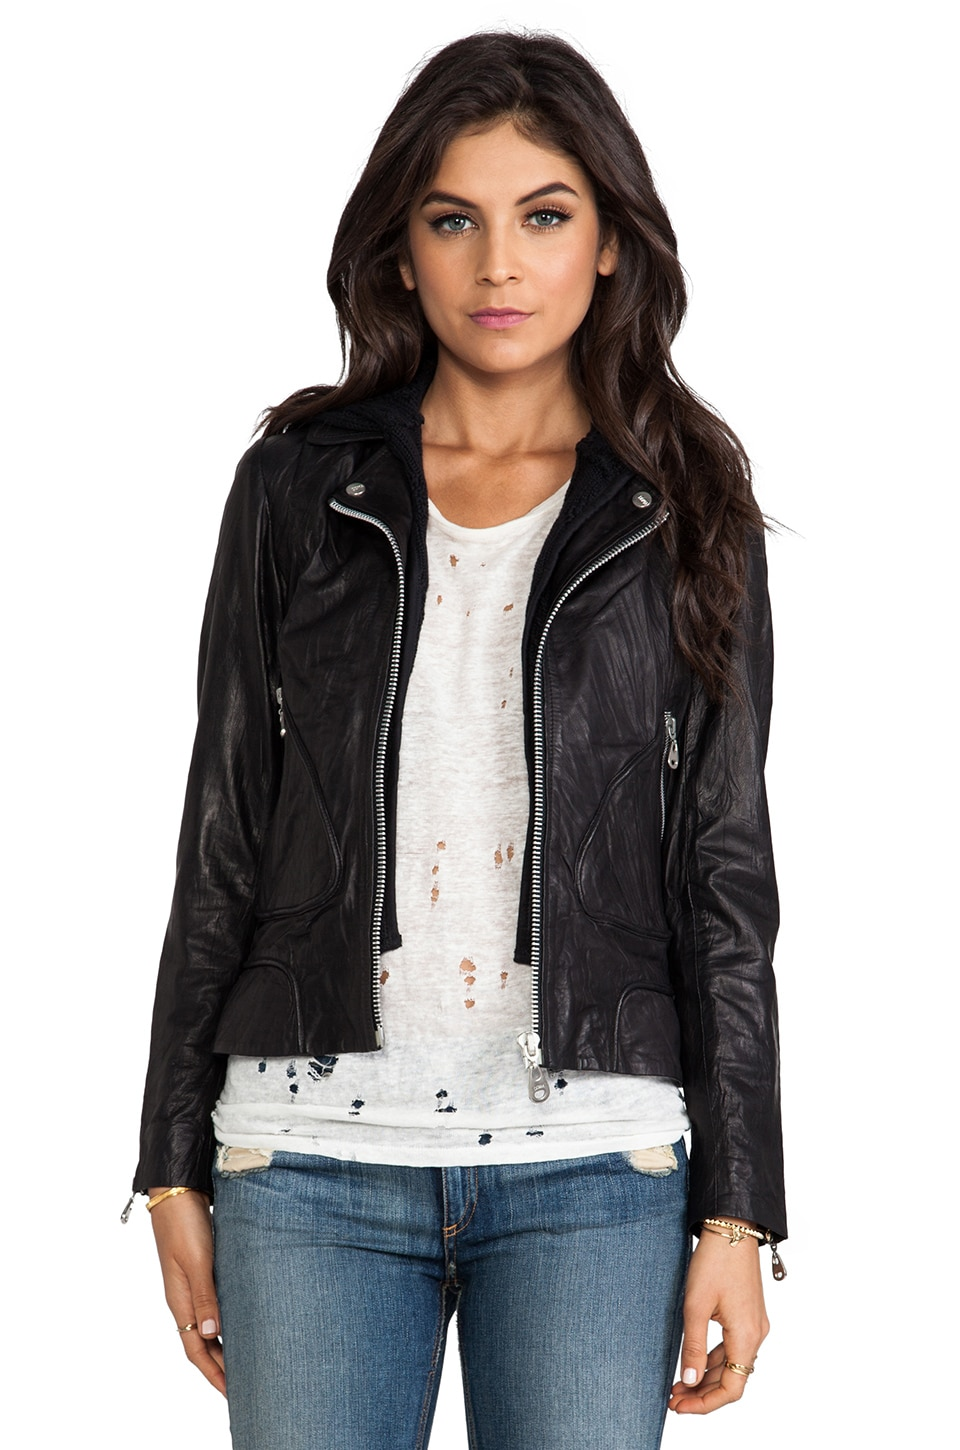 DOMA Washed Lamb Leather Jacket with 2 Zip Out Hoods in Black